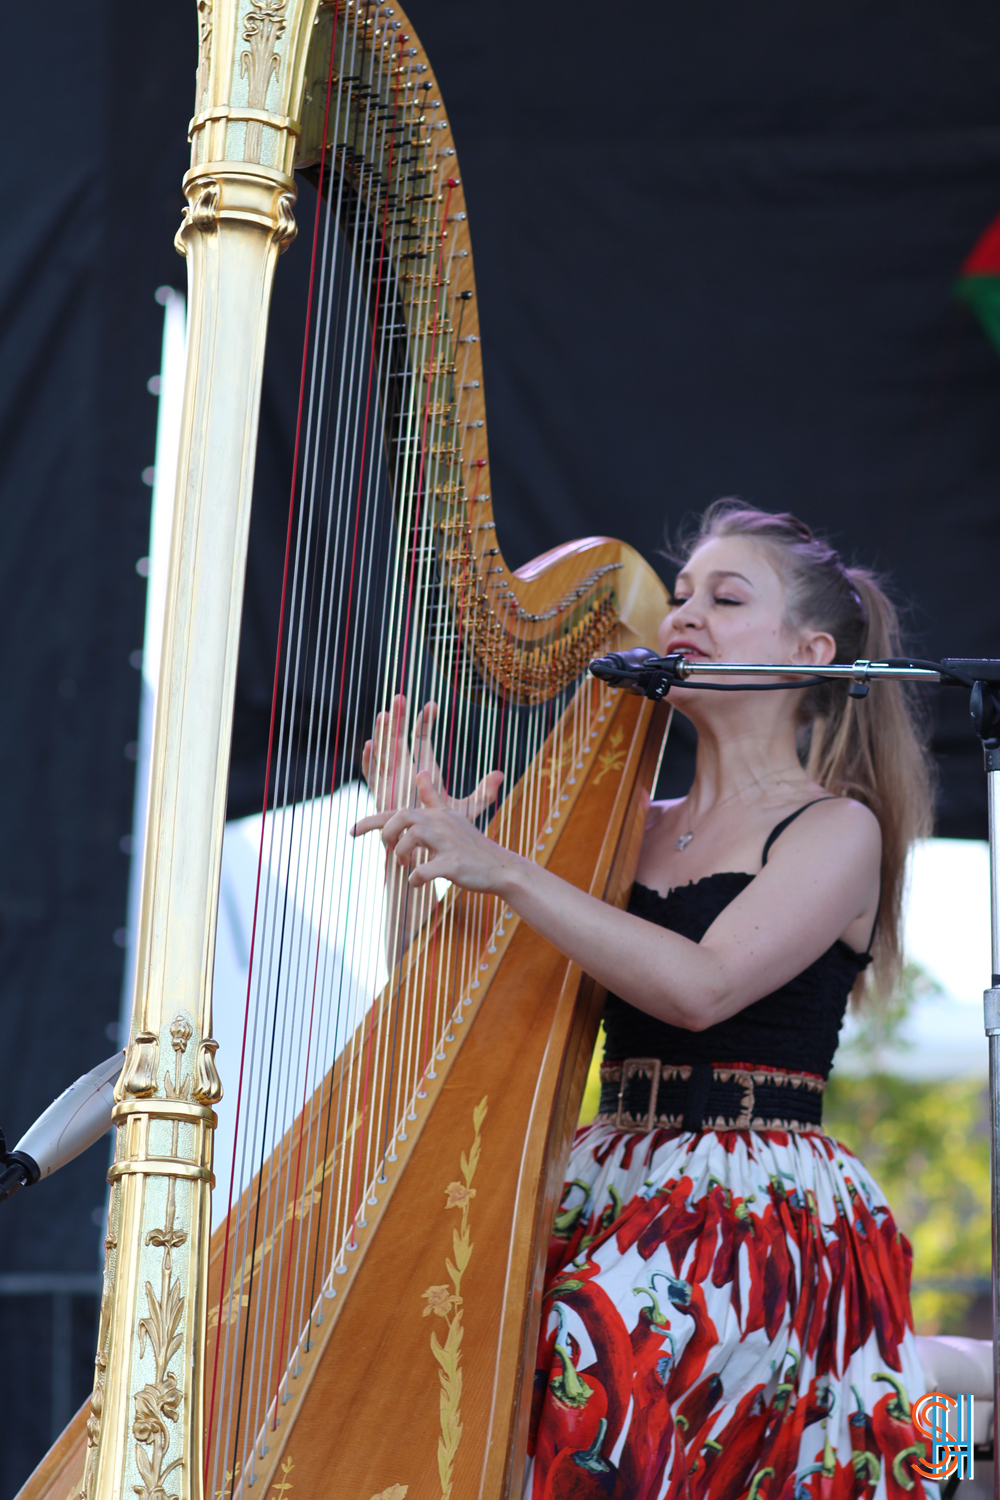 Joanna Newsom Pitchfork Music Festival 2013 Close